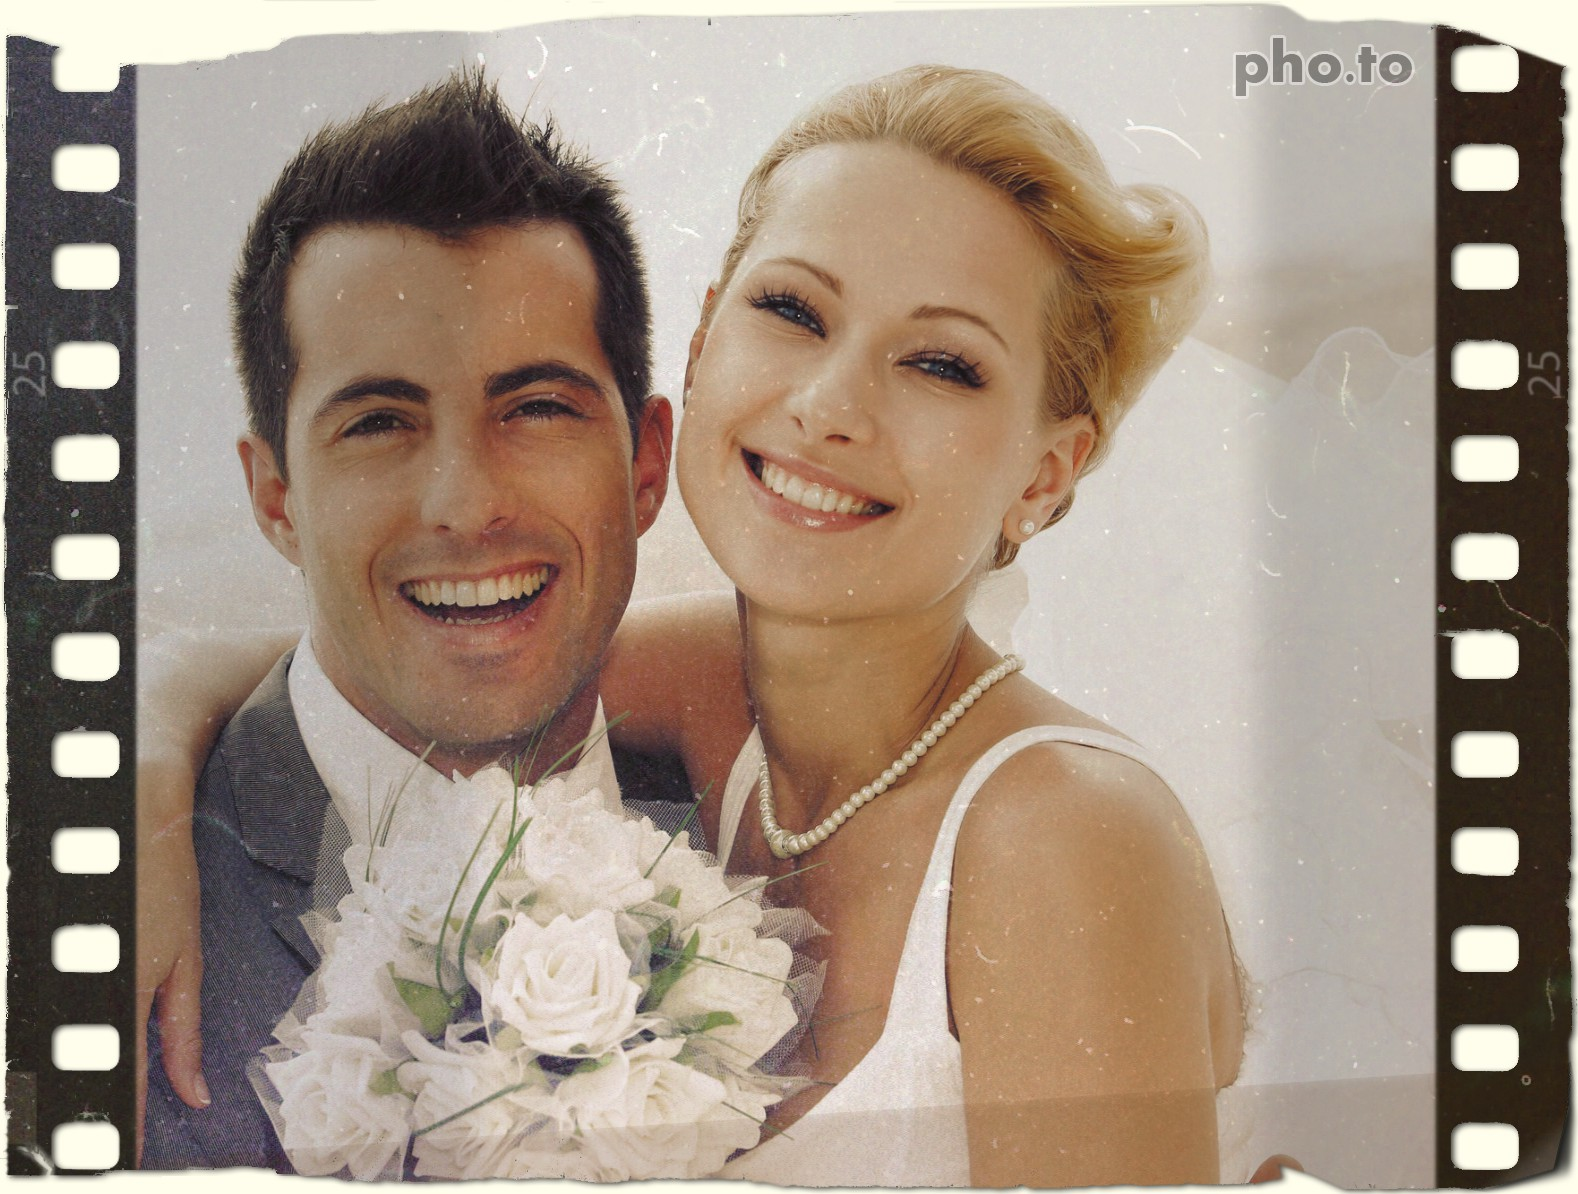 Photo of happy newlyweds edited with photo film frame